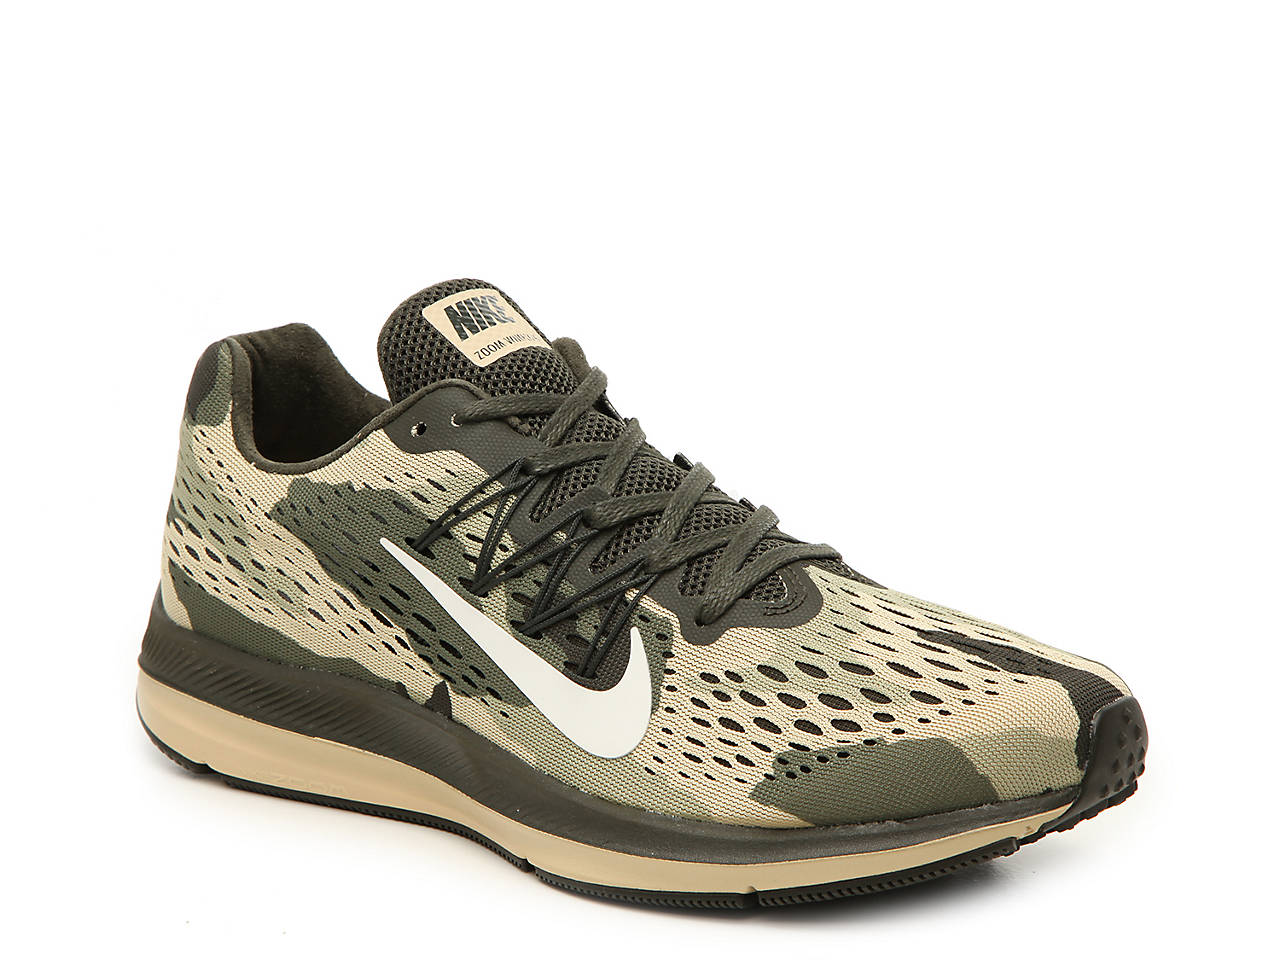 newest f2ce5 36051 Nike. Zoom Winflo 5 Lightweight Running Shoe ...